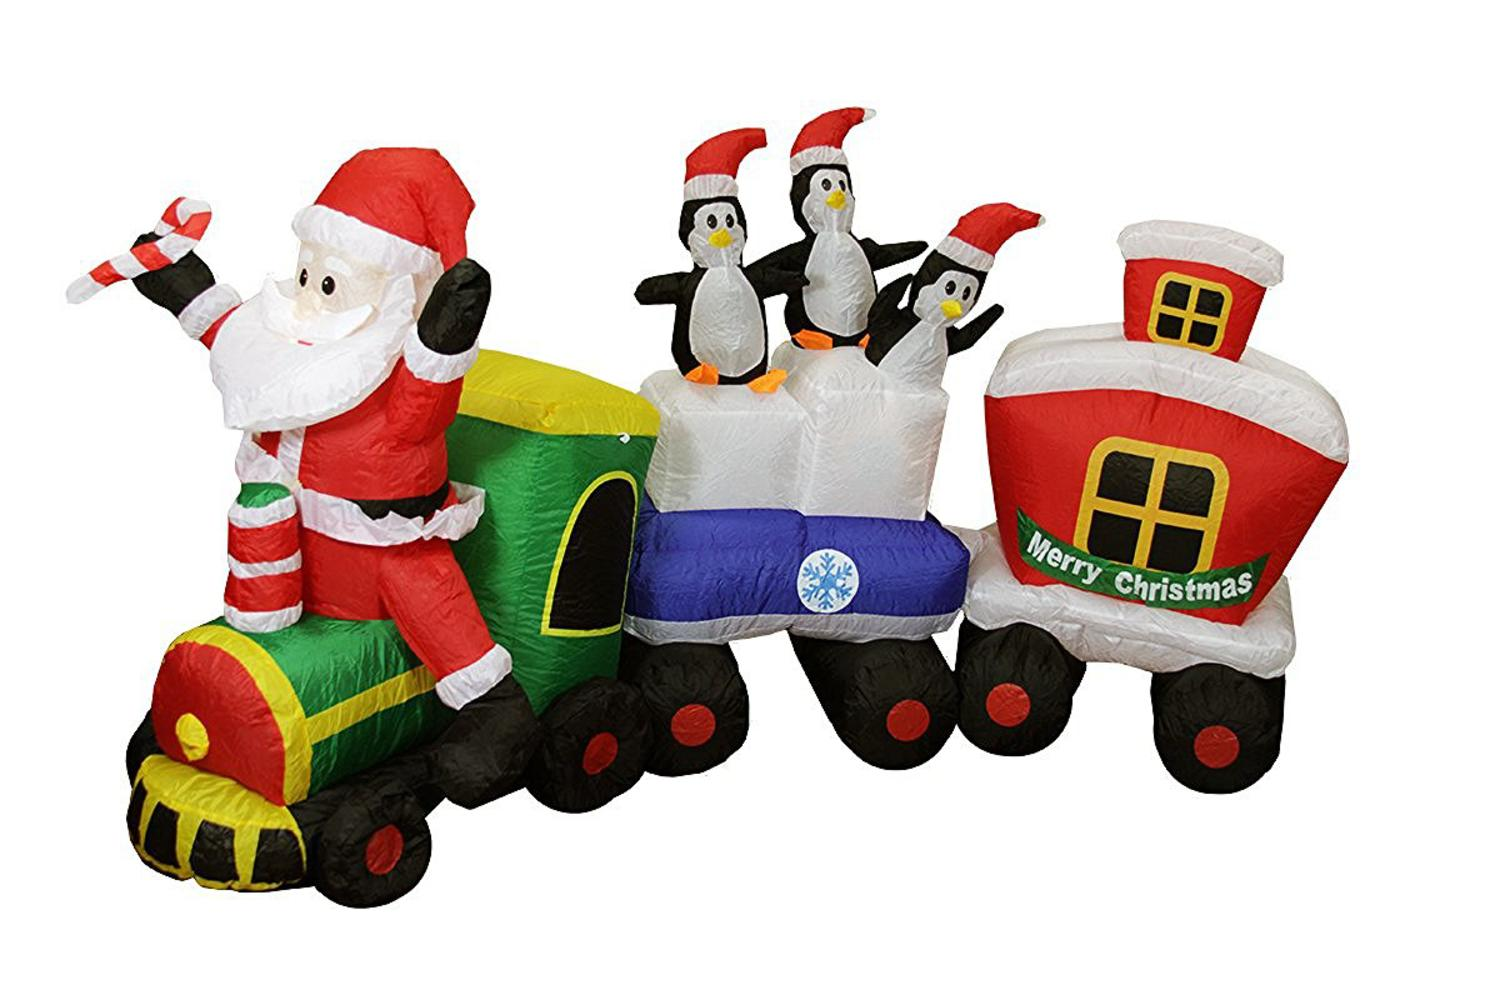 82 inflatable lighted santa express train christmas outdoor decoration walmartcom